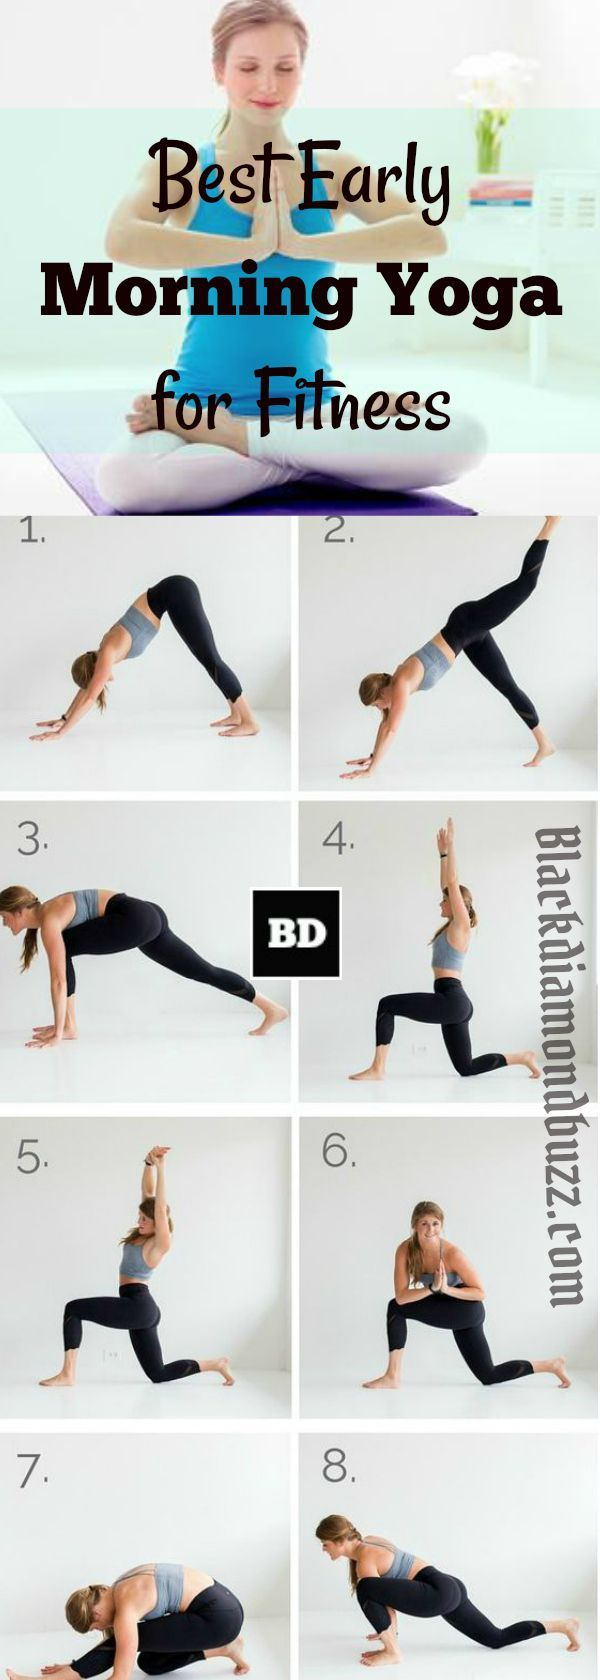 Best early morning yoga exercises for fitness.  If you want to reduce risk to depression and stress you need to start doing yoga regularly.According to a new research published by American Psychological Association (APA), claimed that multi-week regimen of yoga exercises are effective at reducing symptoms of depression